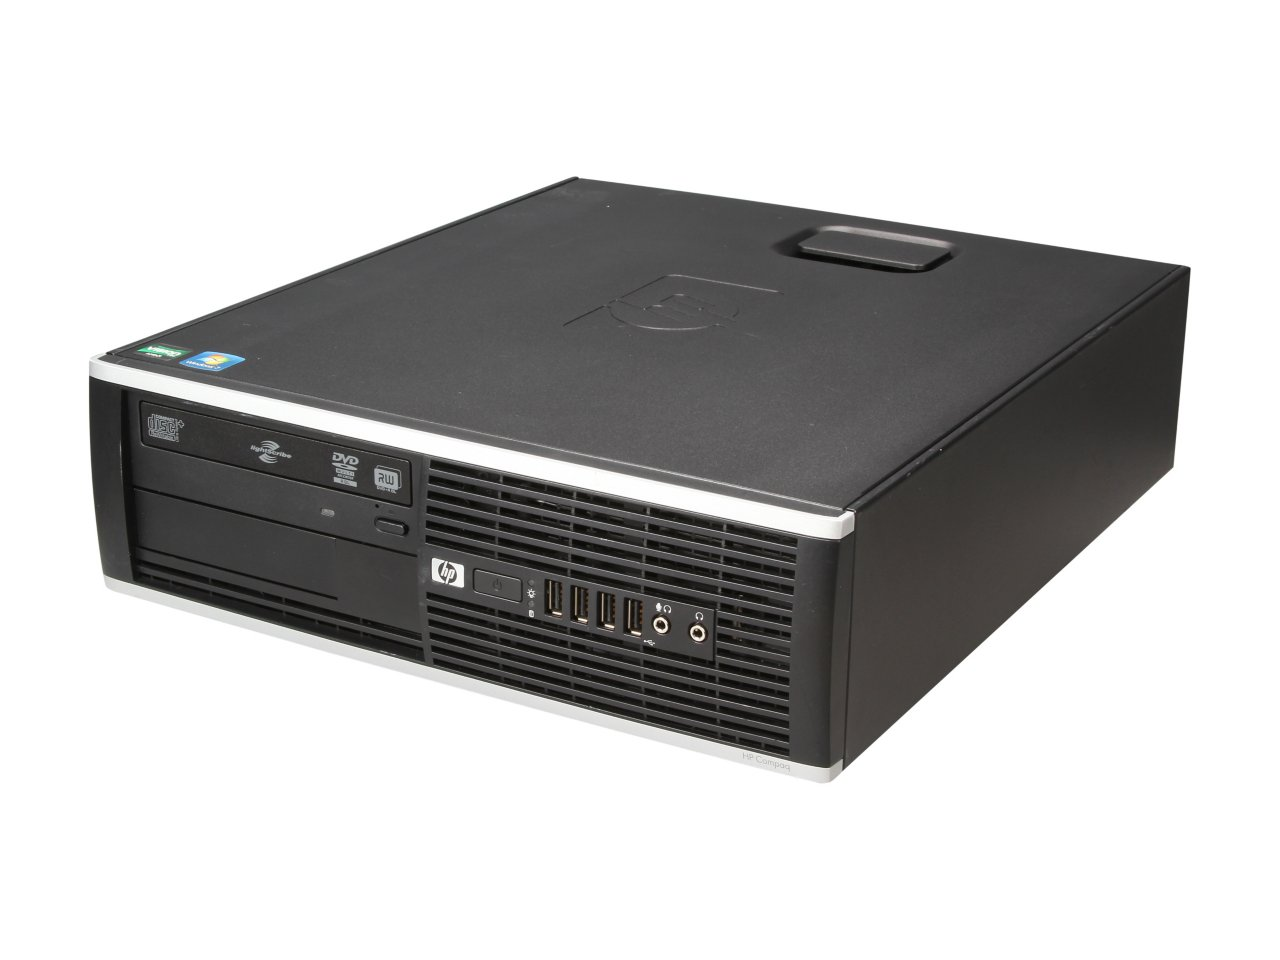 HP Compaq 6005 small form factor NO OS